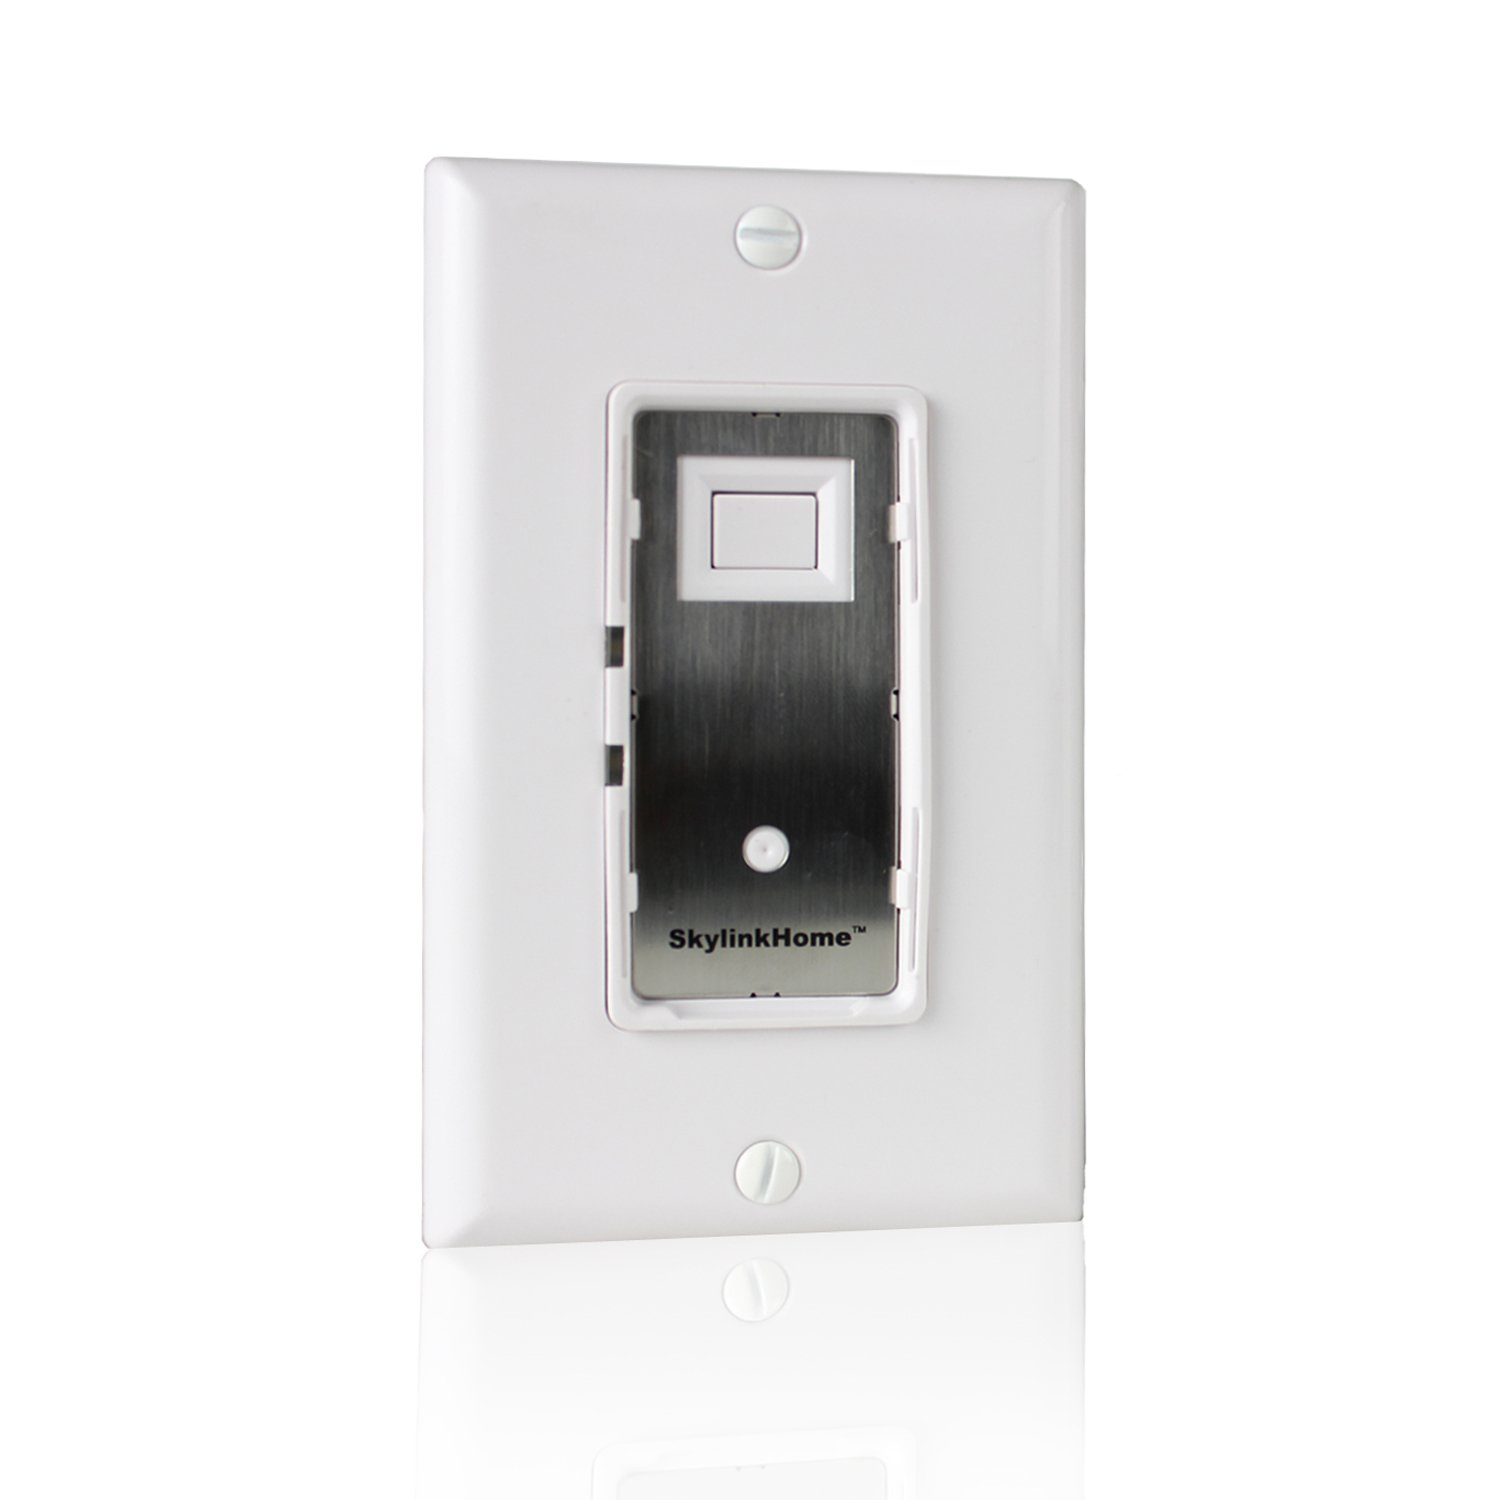 SkylinkHome WE-001In-Wall On / Off Wall Switch Lighting Control Home Automation Smart Light Remote Controllable Light Receiver, SkylinkNet Compatible Easy DIY Installation without neutral wire